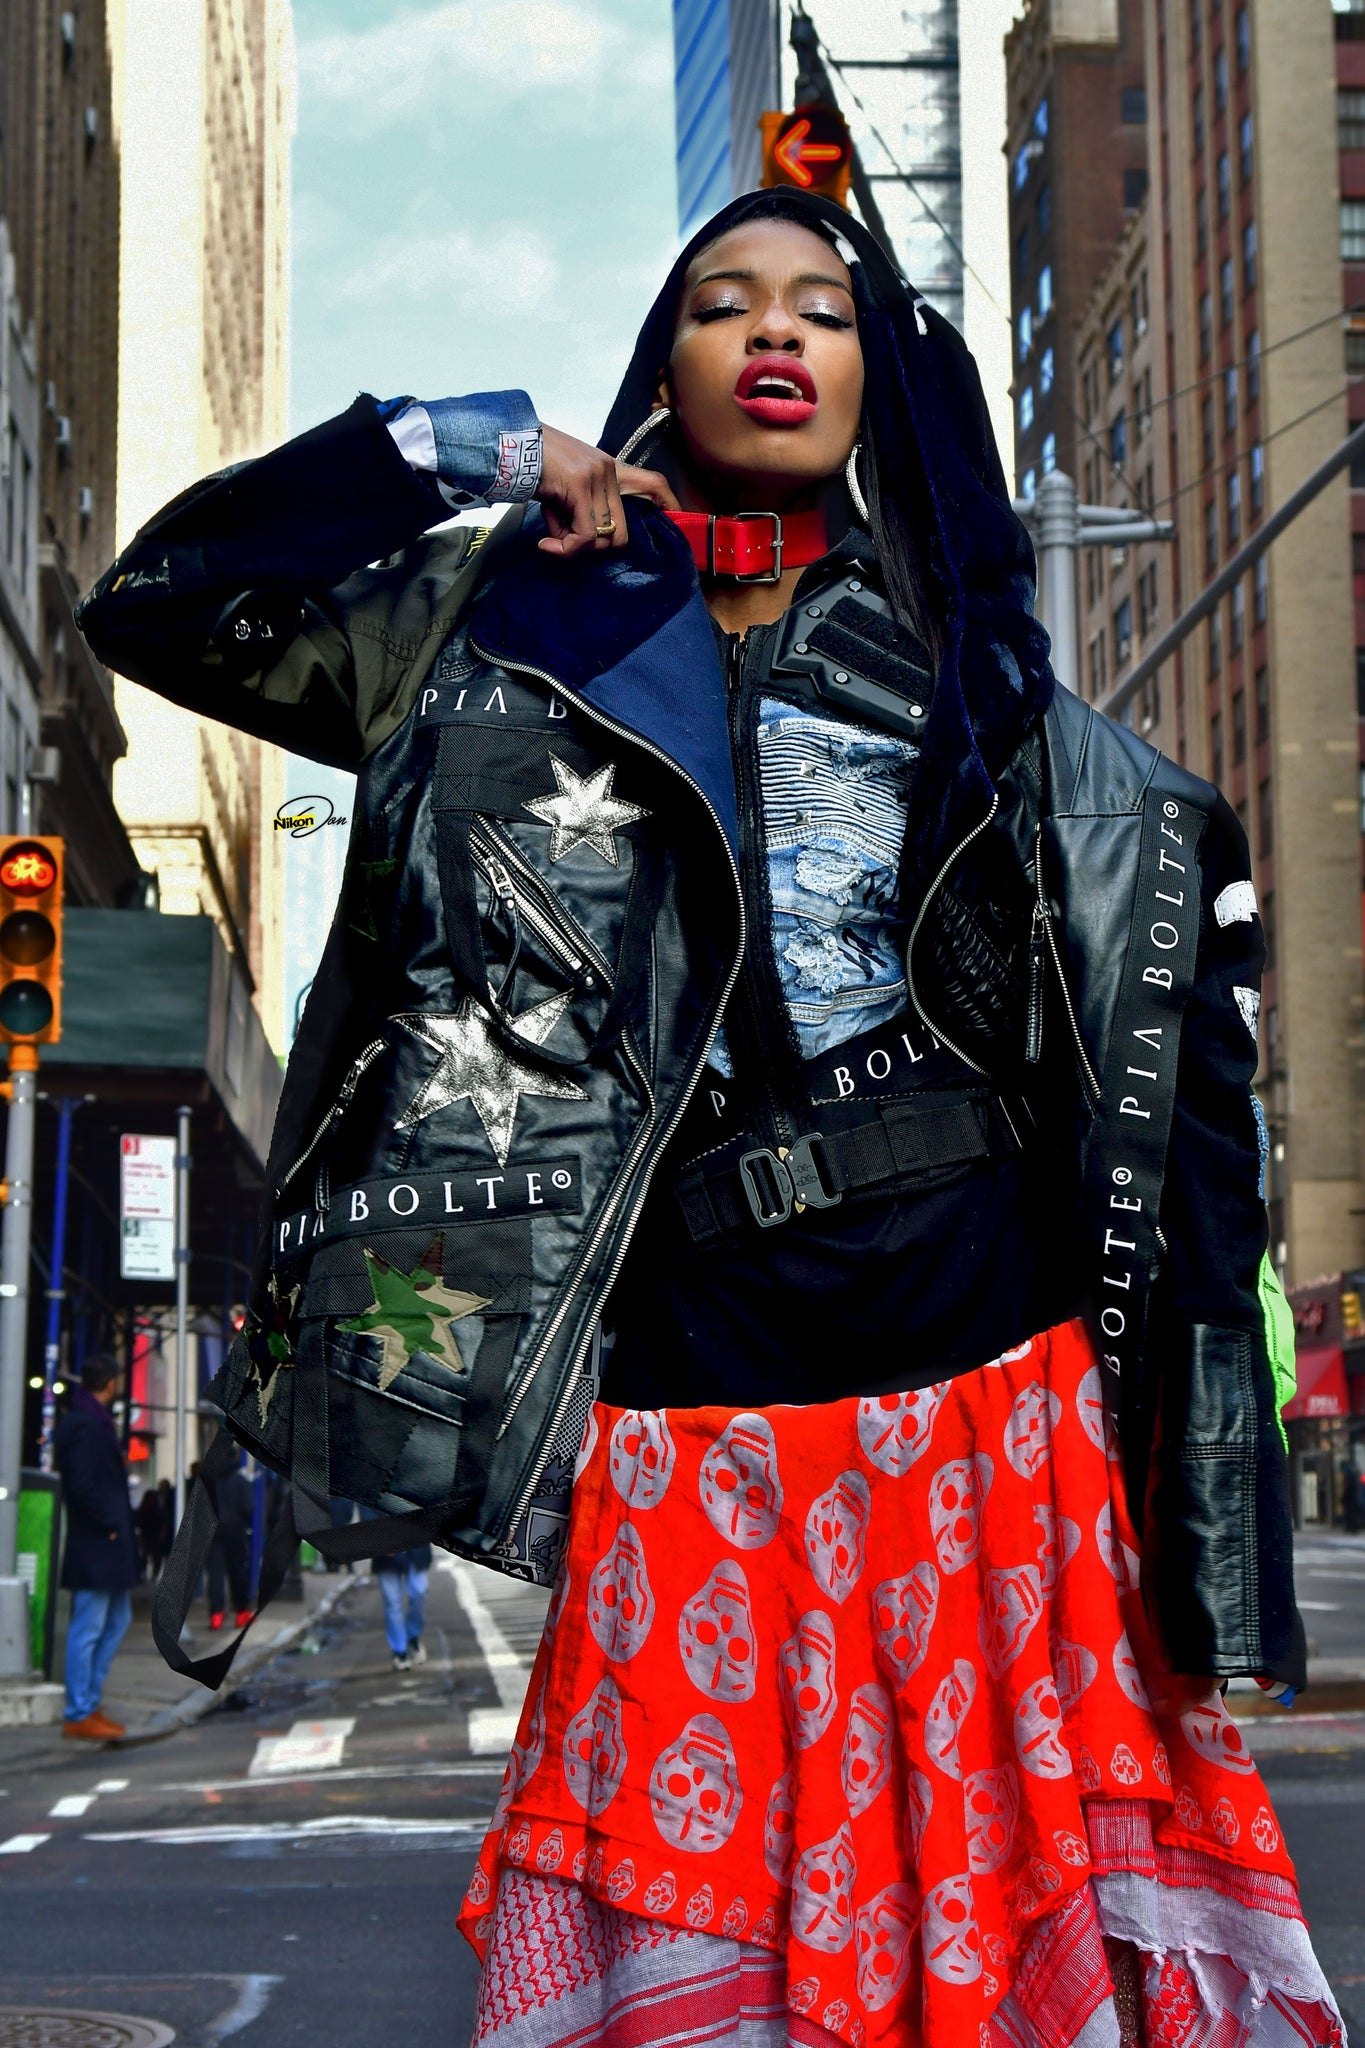 PIA BOLTE ® Jacket NYC 8th AV. - PIA BOLTE® COUTURE